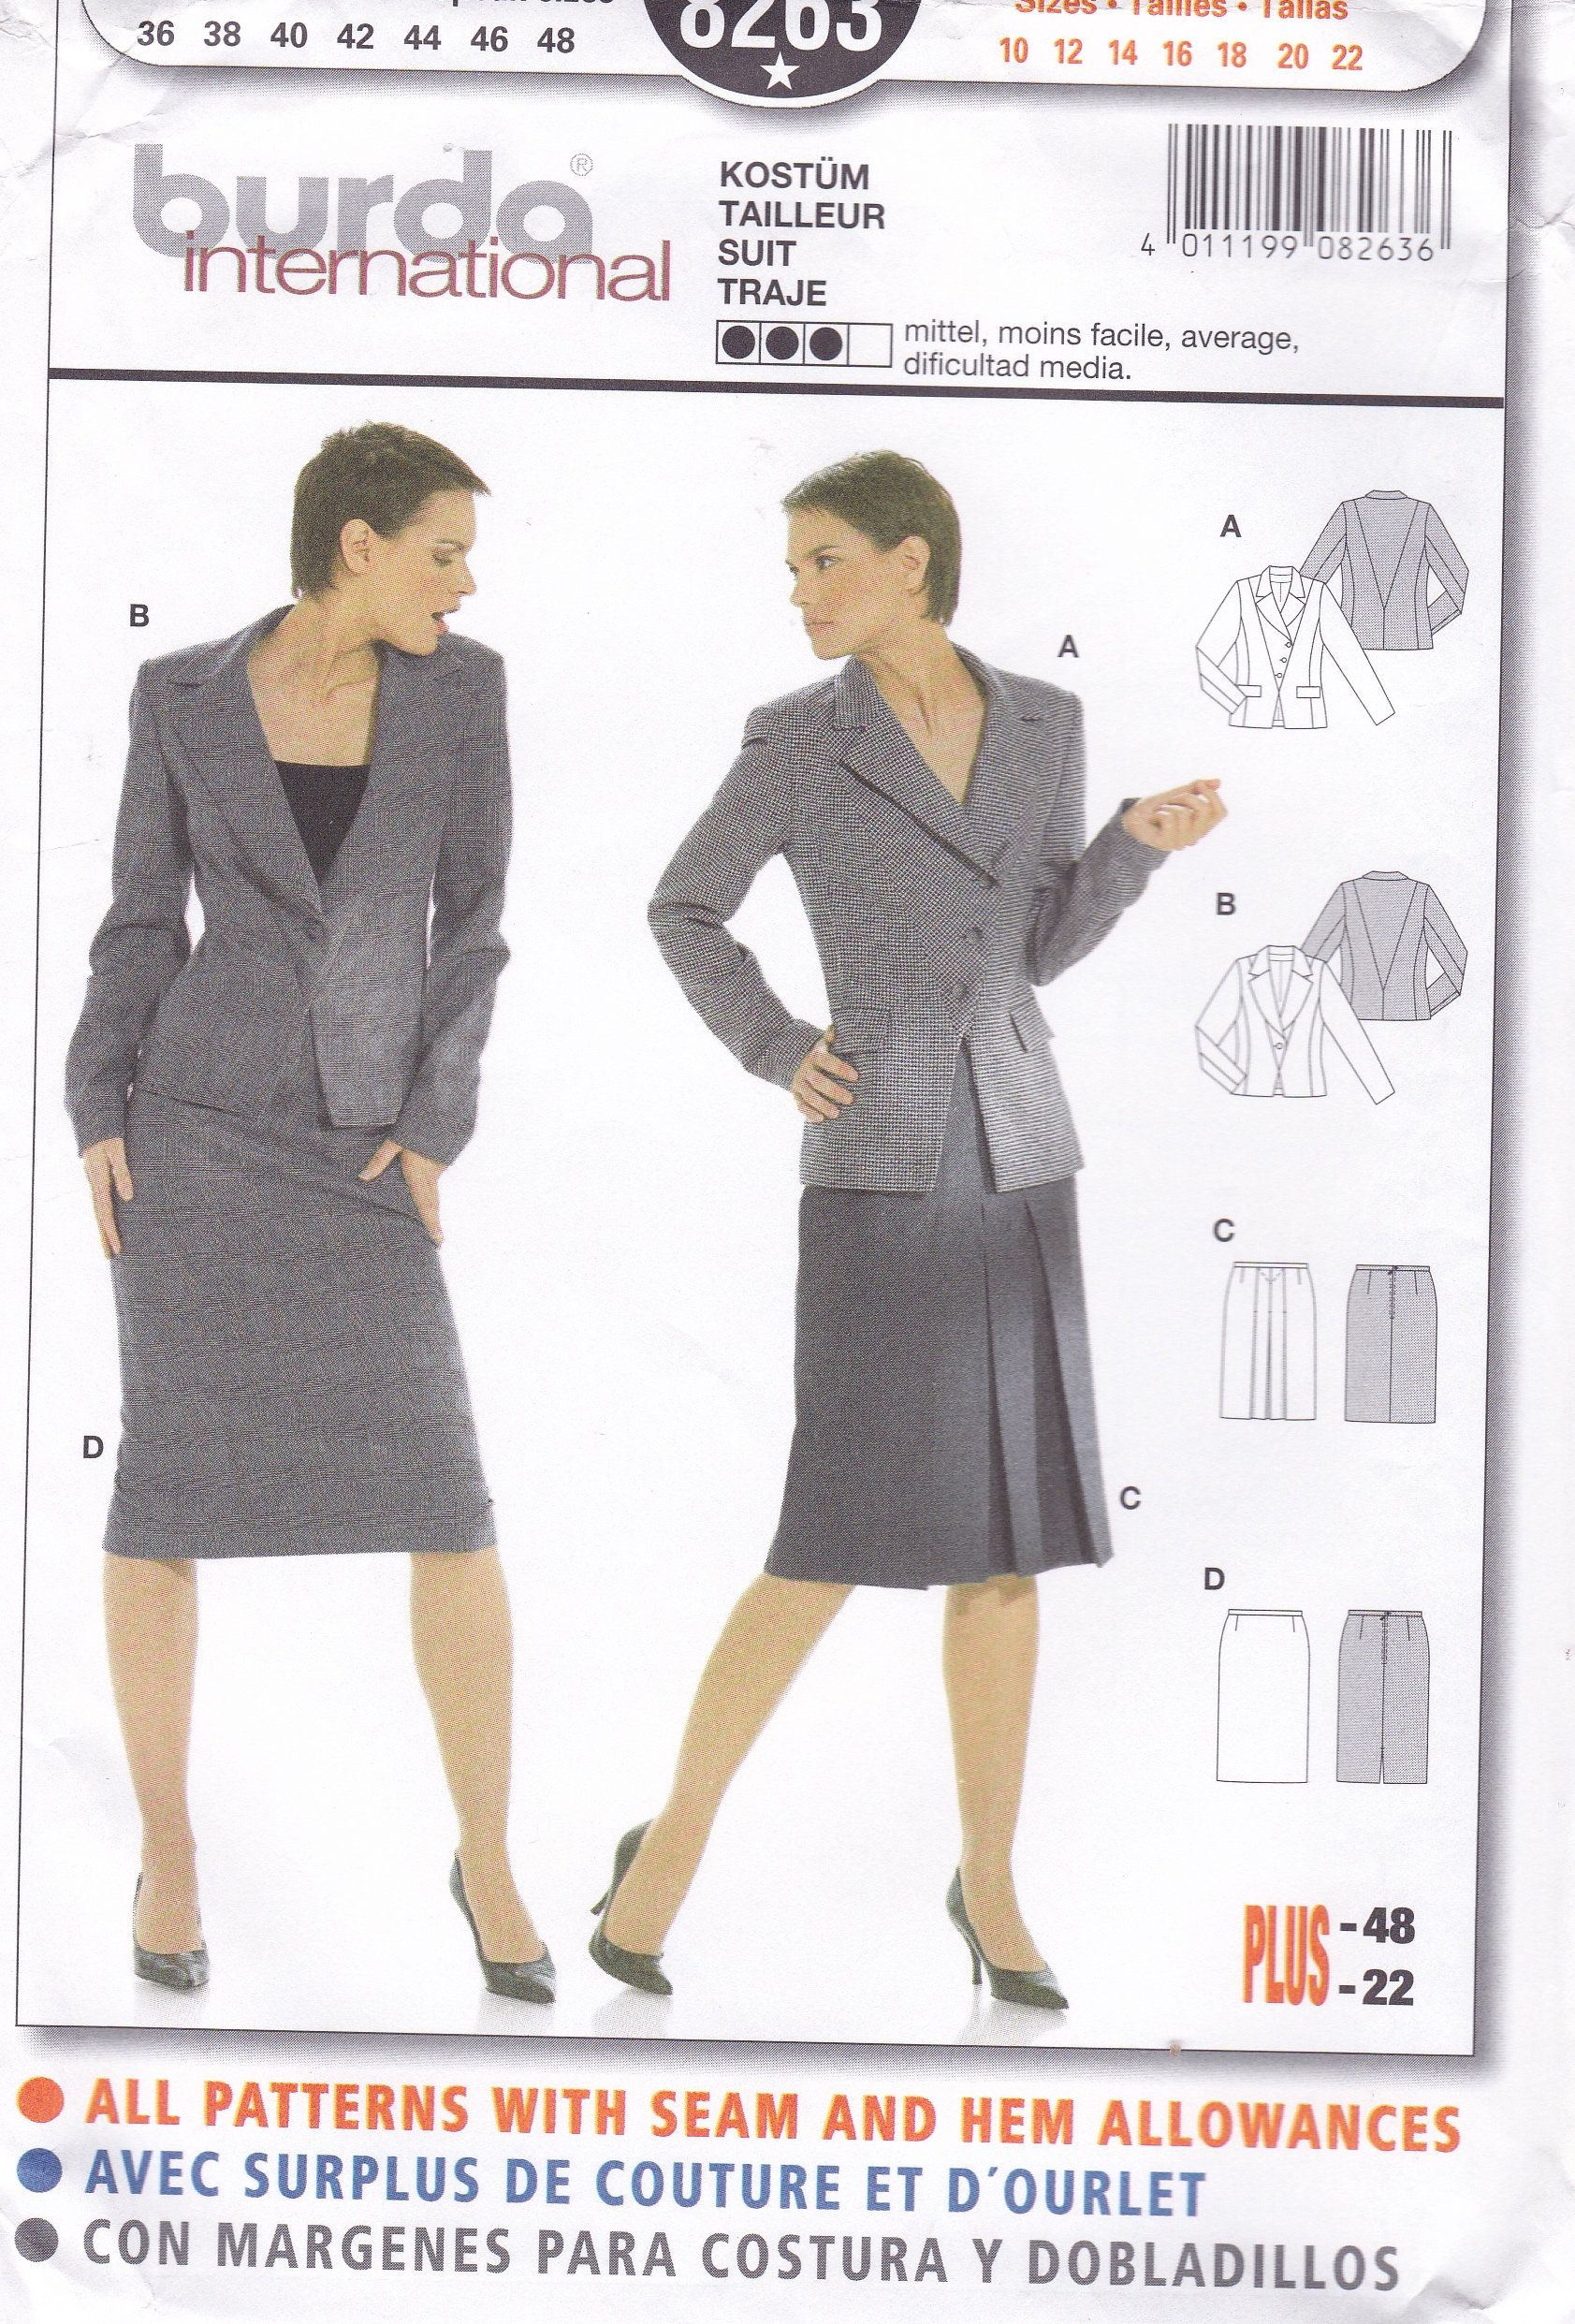 FREE US SHIP Burda 8263 Sewing Pattern Suit Jacket Skirt ...